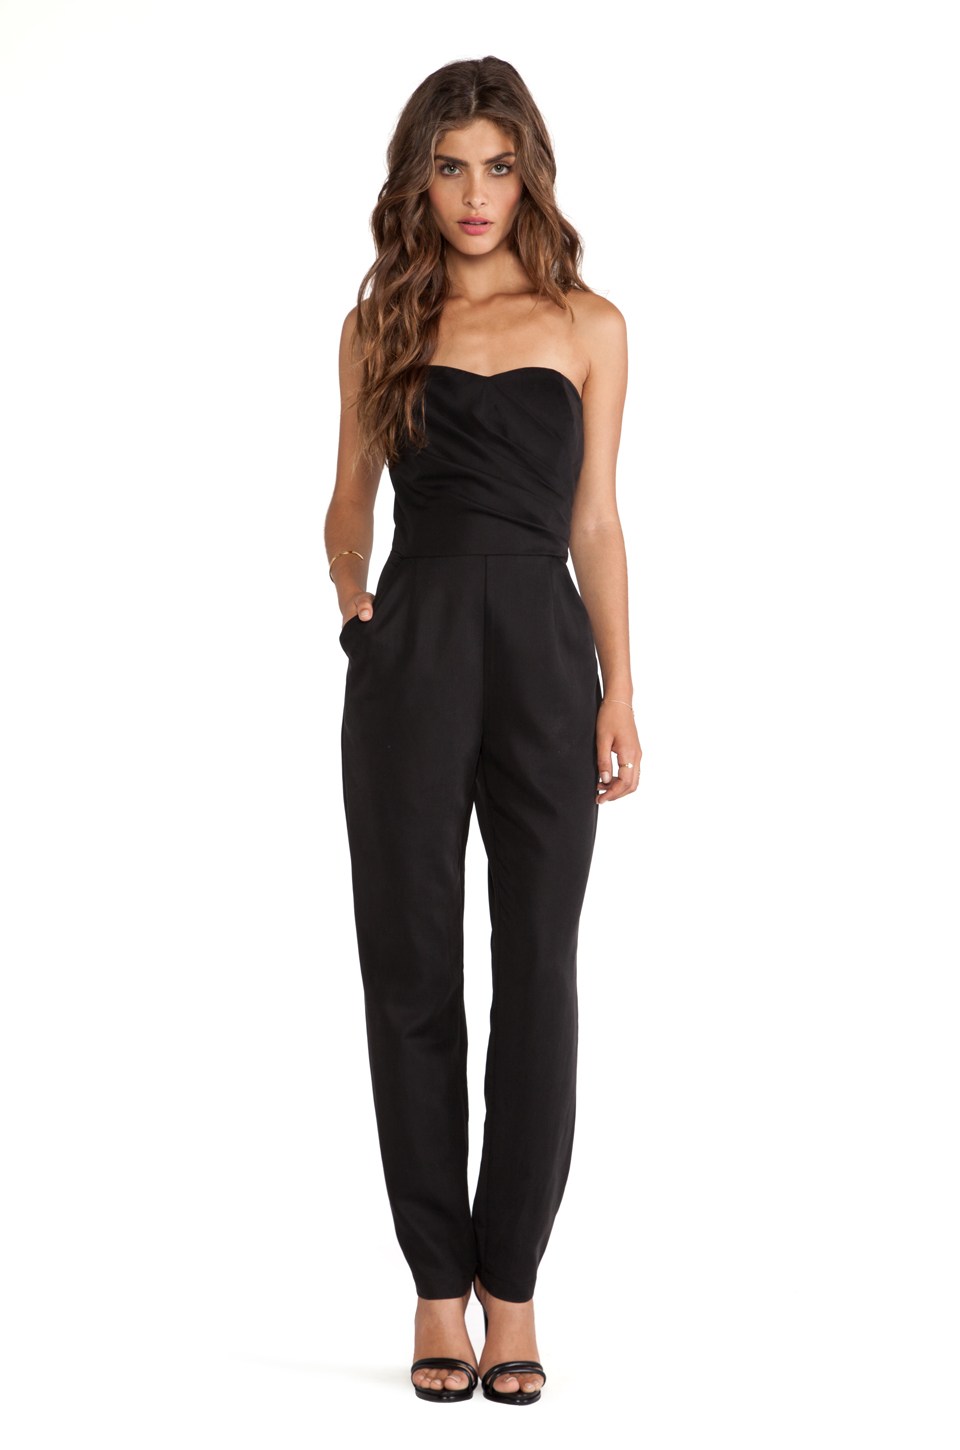 A strapless black romper finished in faux leather is effortlessly laidback and stunning. Exposed zippers and a sweetheart neckline give a touch of edge to this otherwise understated look. Coordinate with a cardigan or blazer for cooler nights or if you want a more formal appearance.